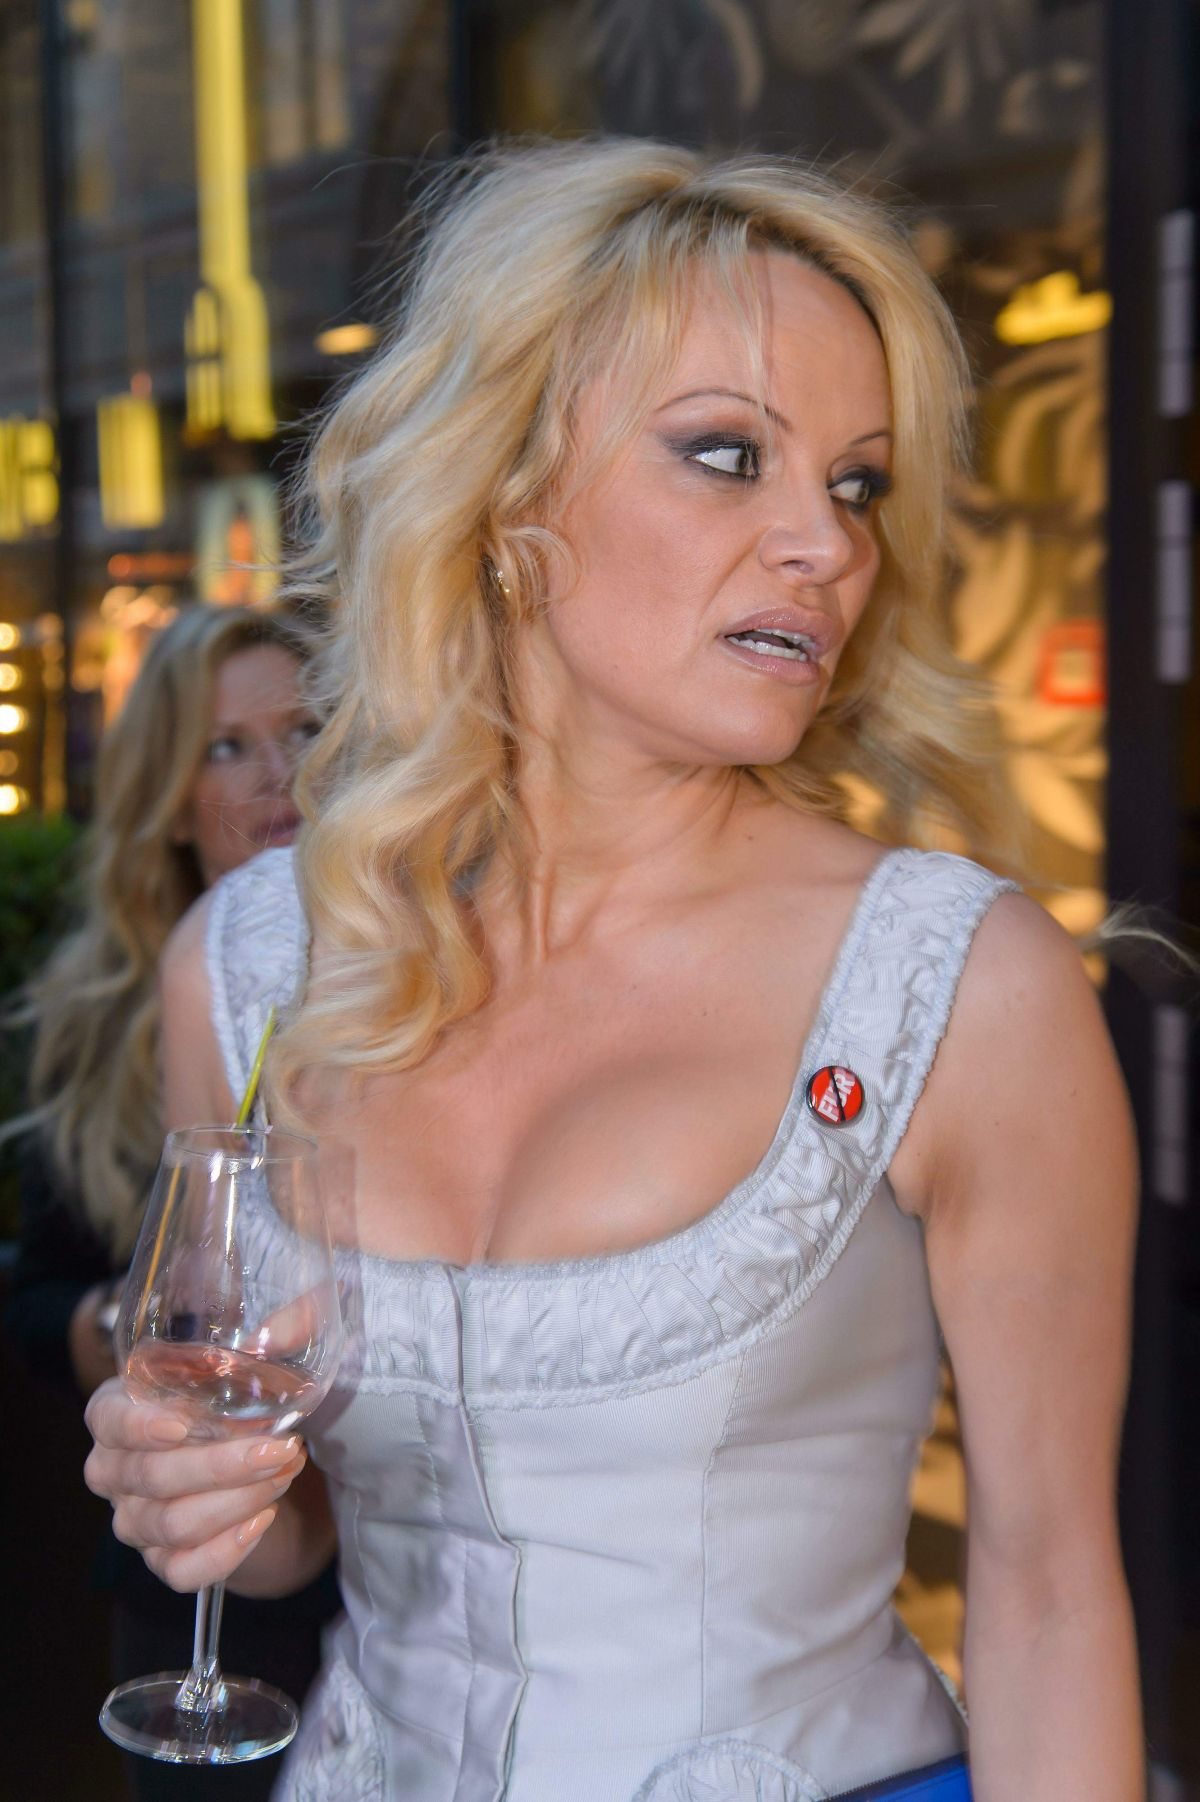 PAMELA ANDERSON at Fur Fur Fashion Show in Vienna - HawtCelebs ...